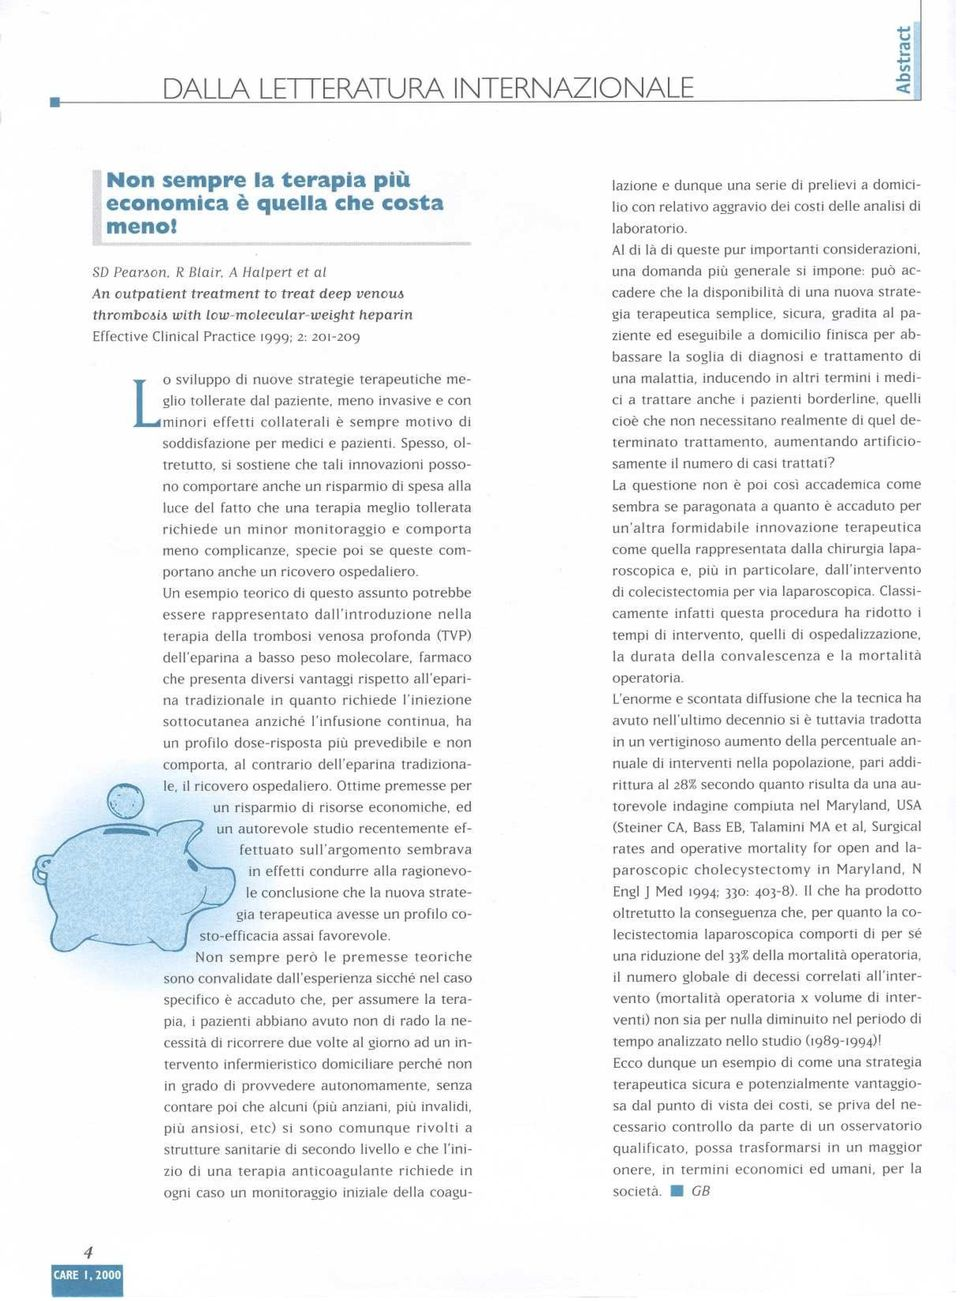 outpatient treatment to treat Jeep venoue cadere che la disponibilità di una nuova stratethromboaia with low-molecular-weight heparin gia terapeutica semplice, sicura, gradita al pa- Effective